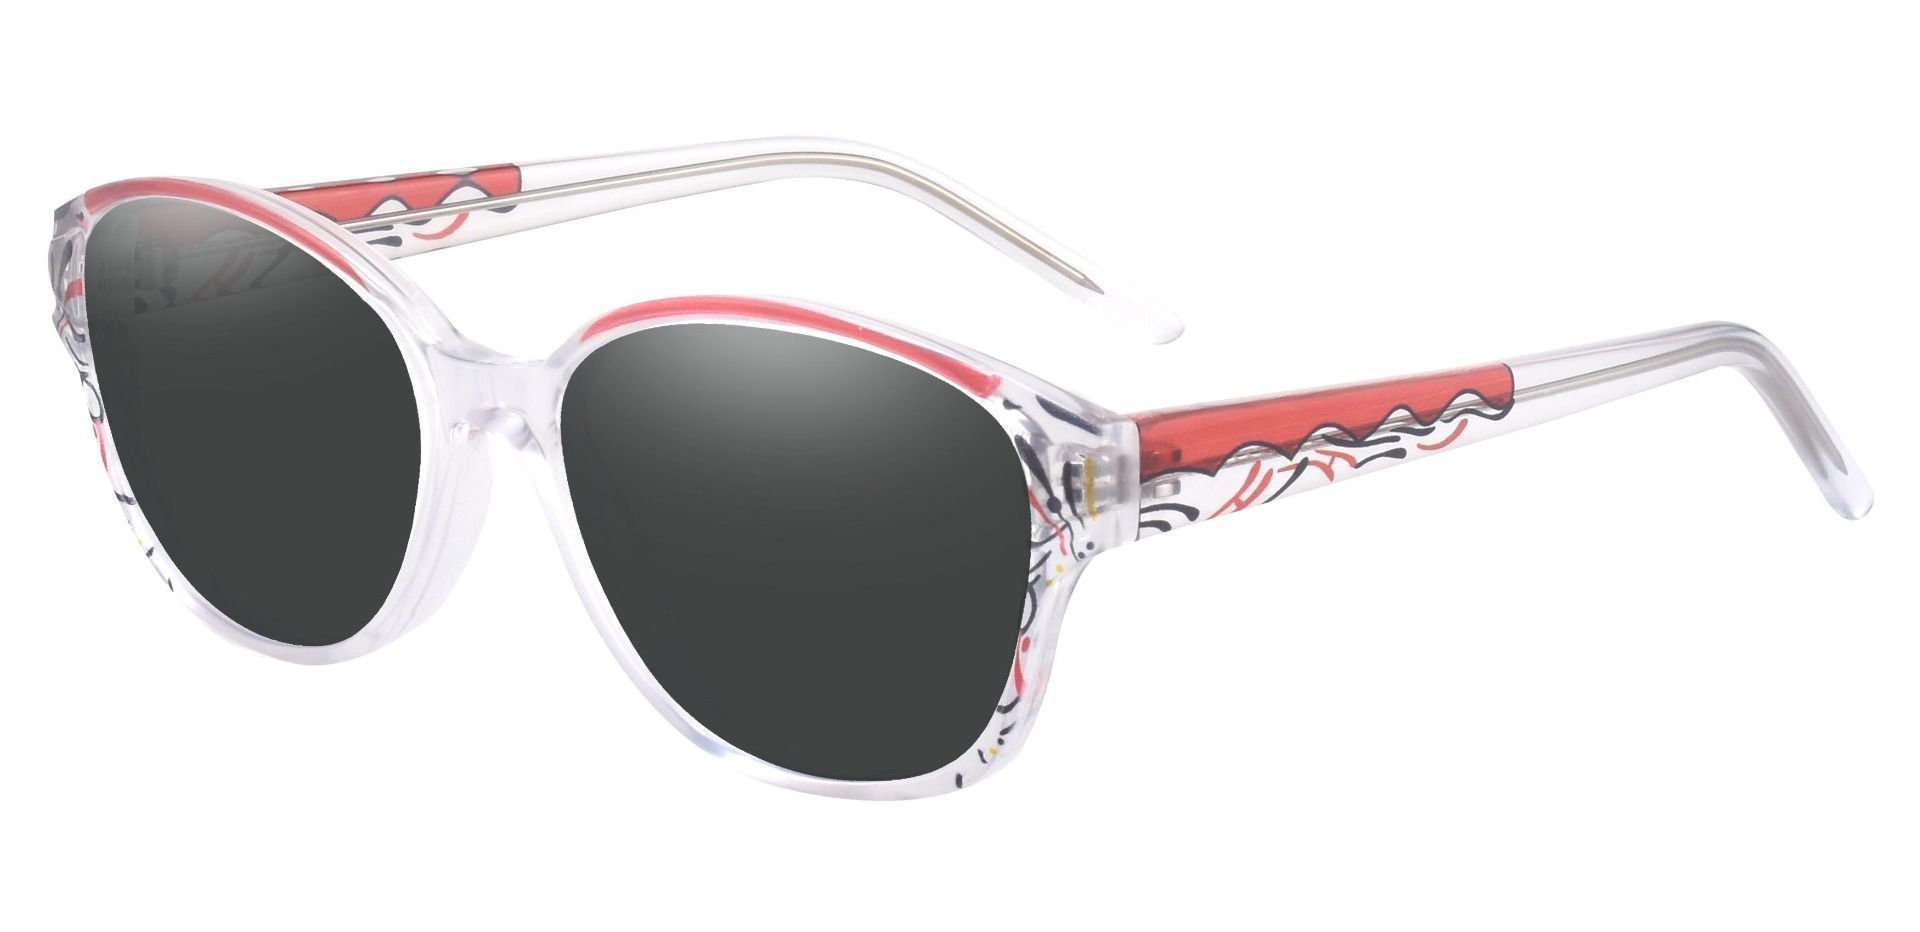 Price Oval Prescription Sunglasses - Red Frame With Gray Lenses